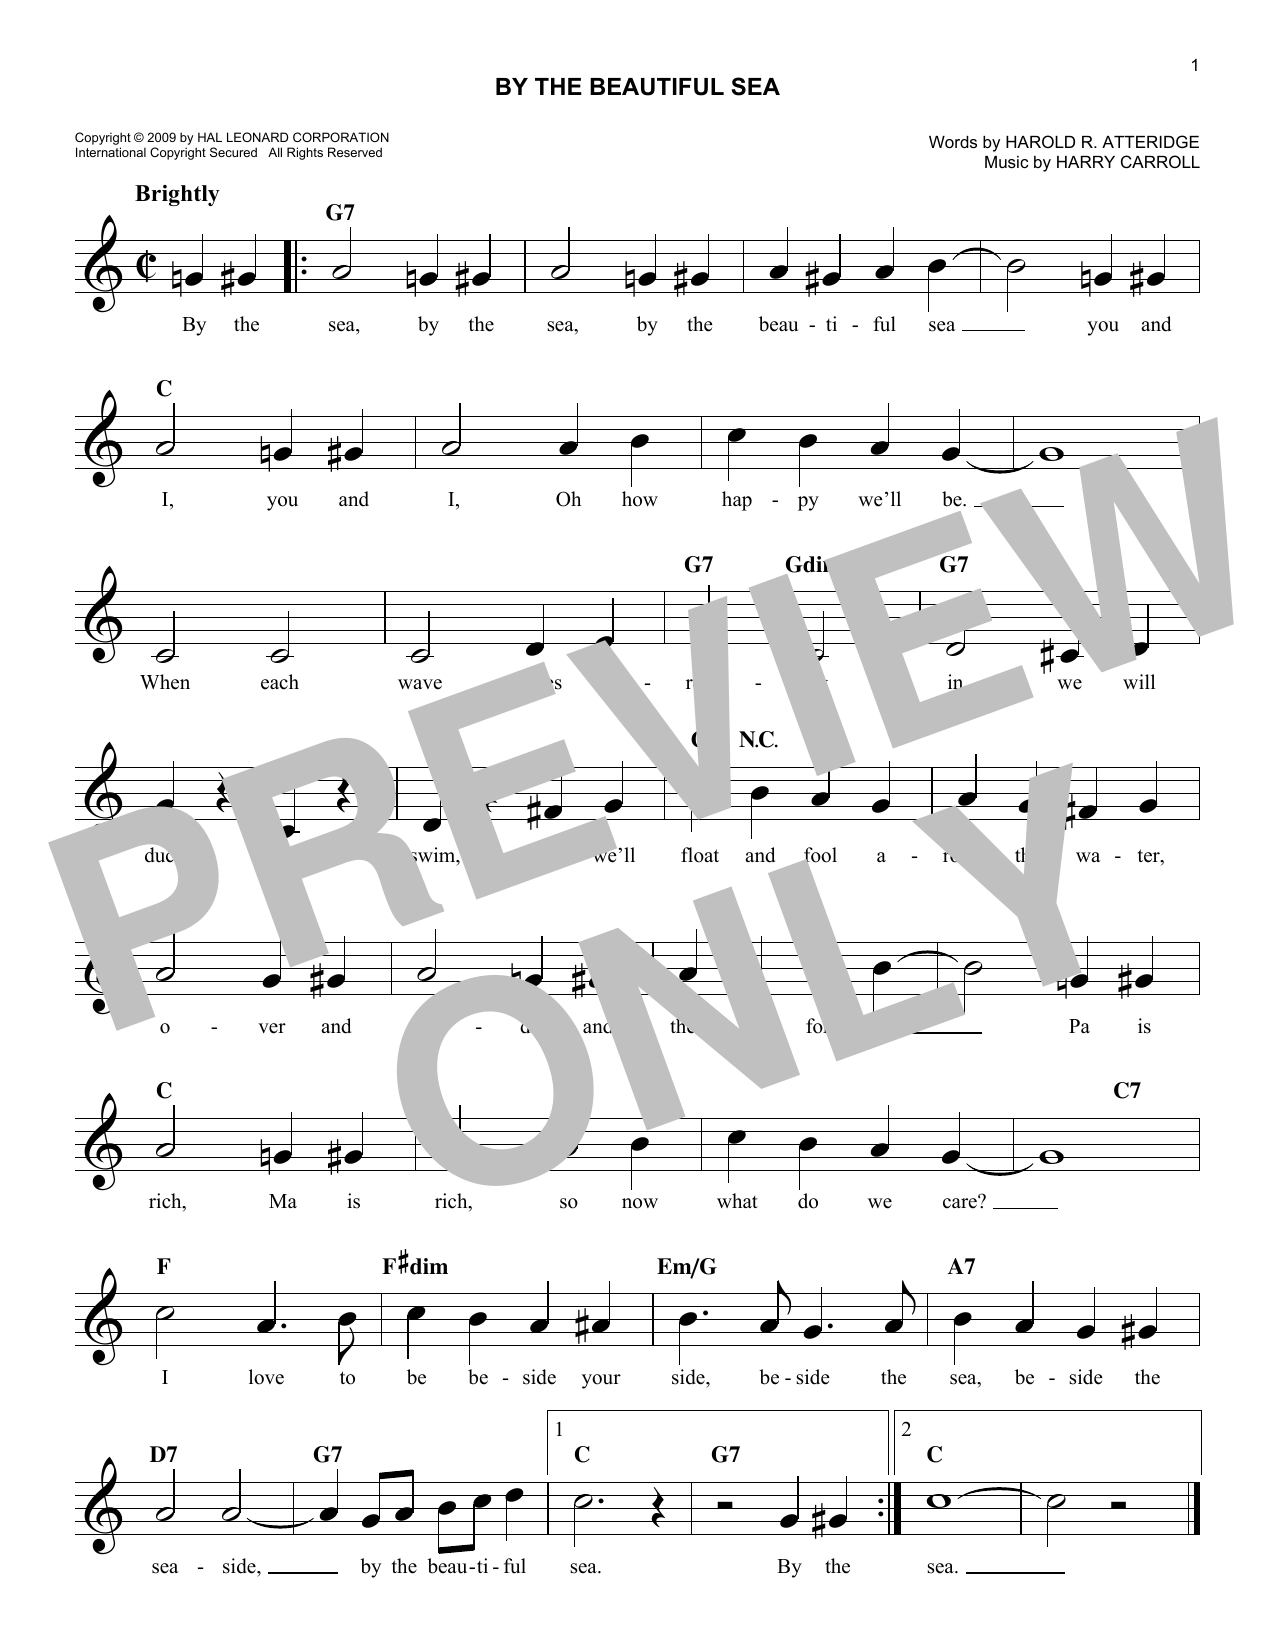 Harry Carroll By The Beautiful Sea sheet music notes and chords. Download Printable PDF.